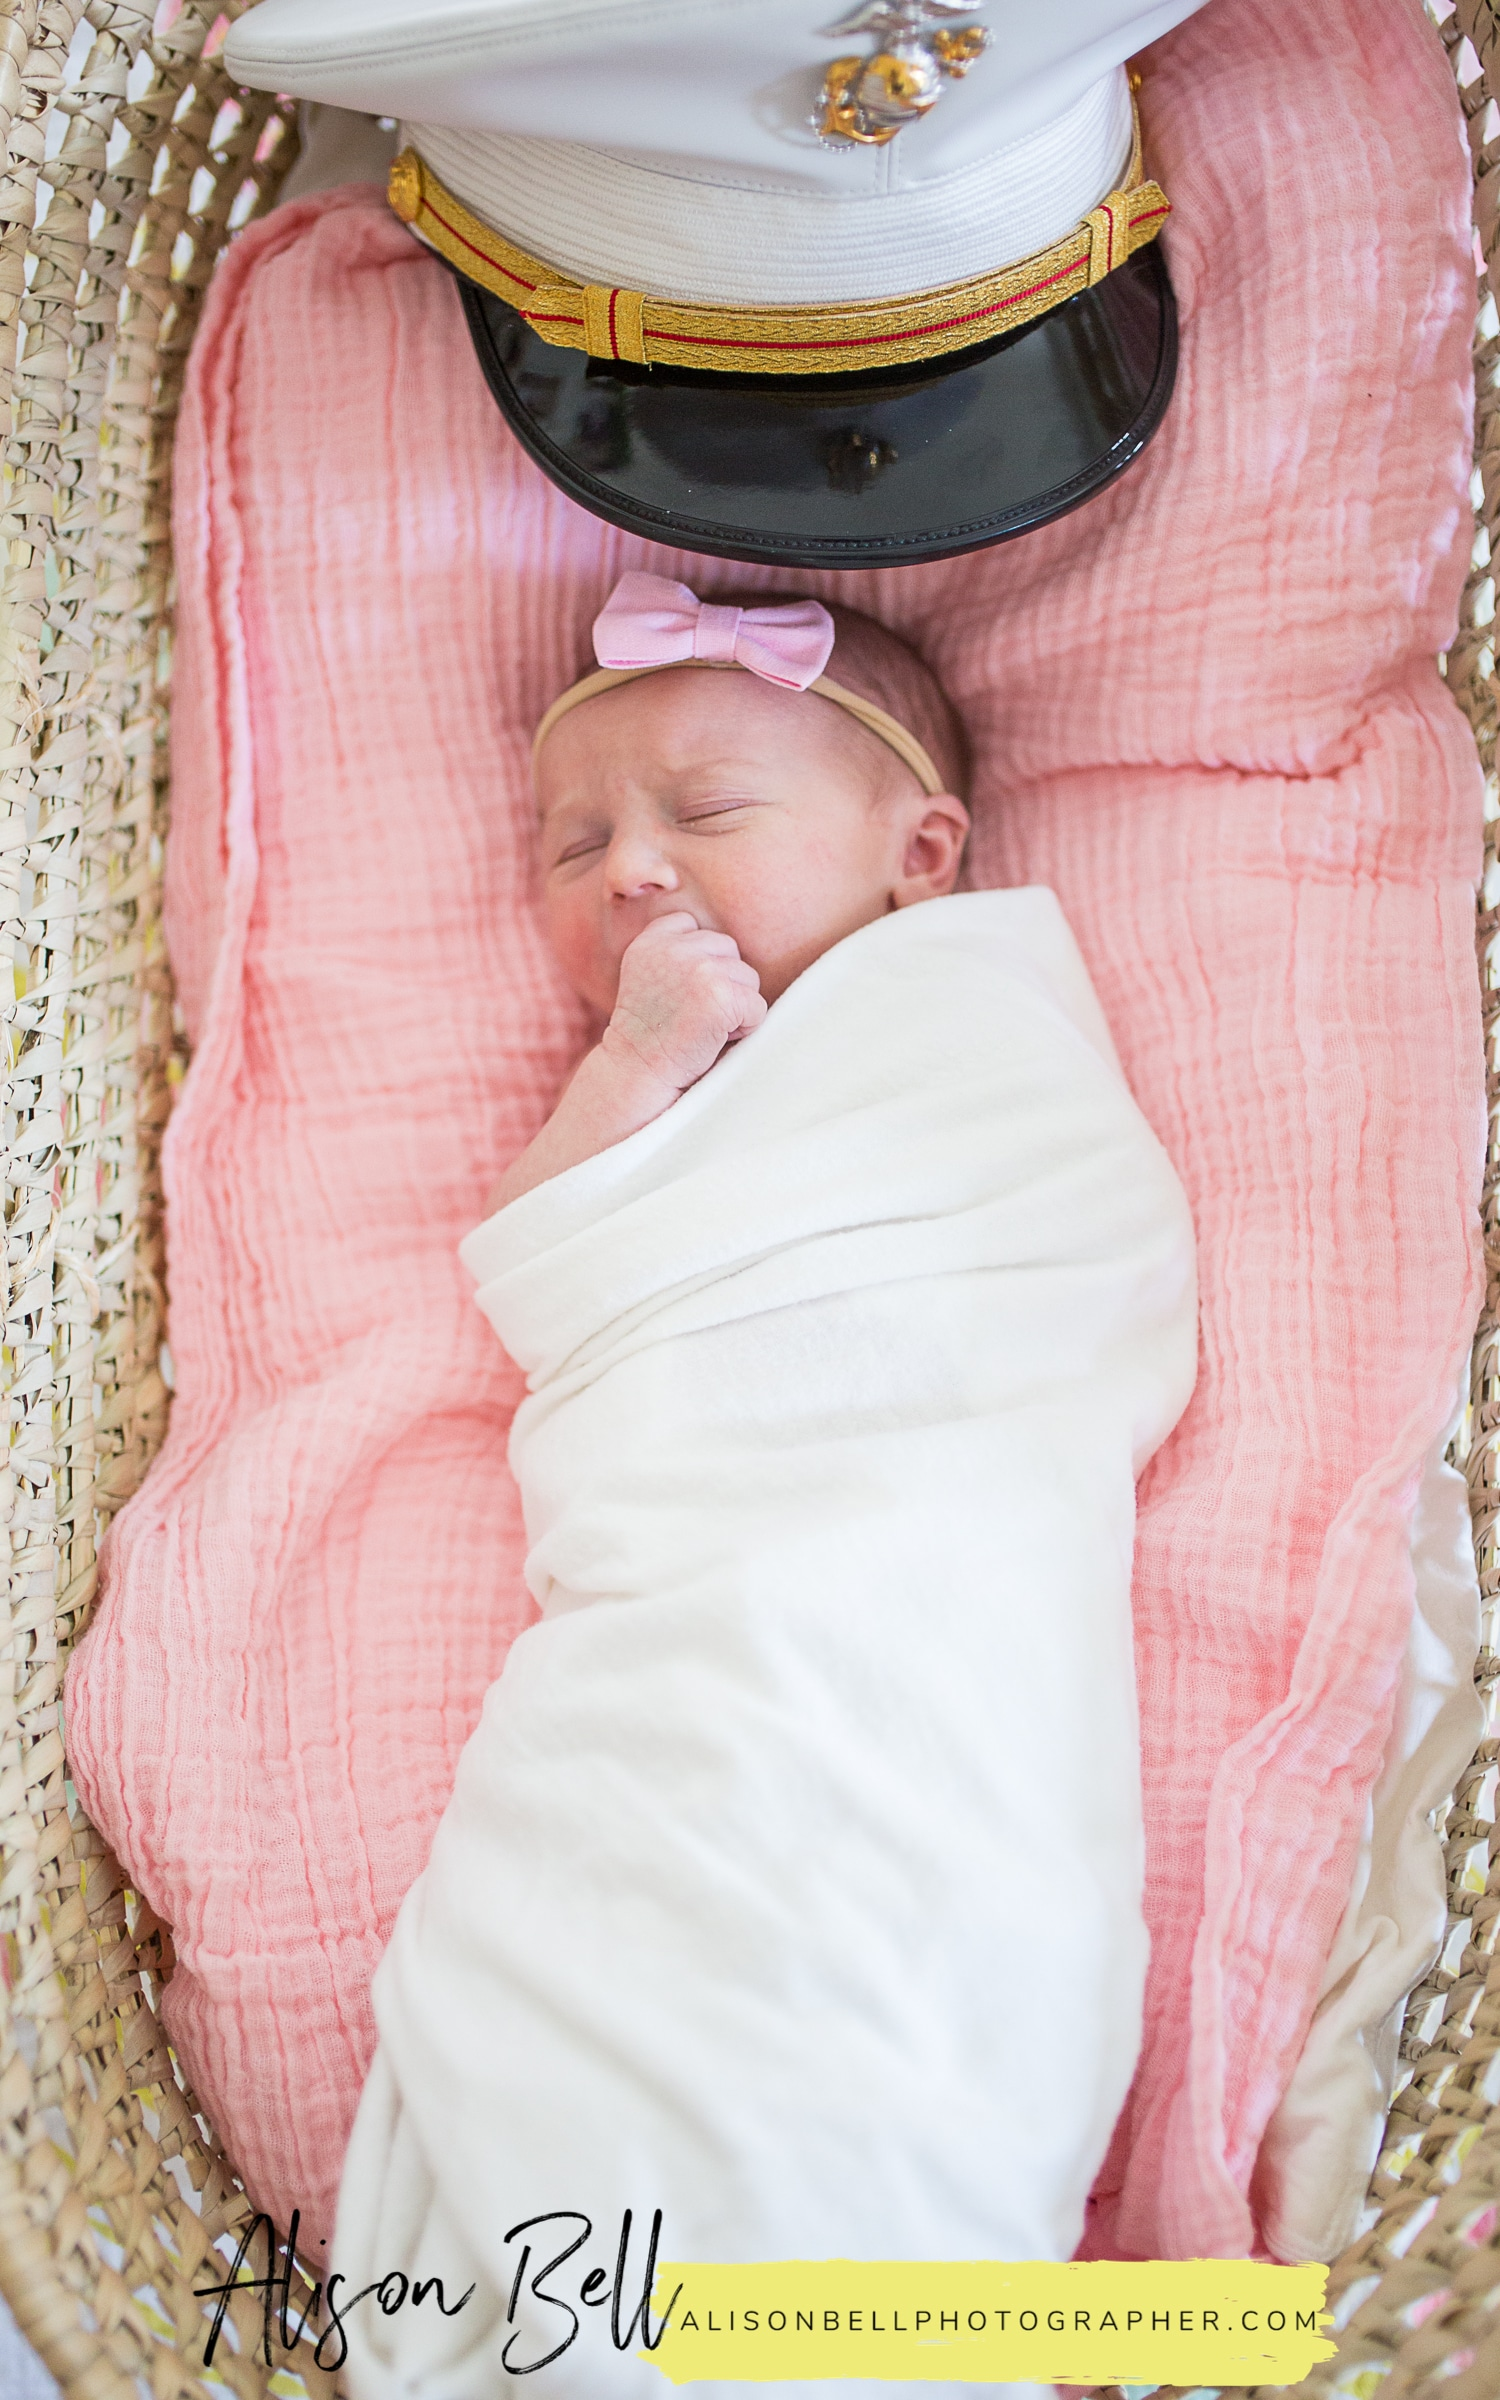 In home lifestyle newborn baby photo session by alison Bell, Photographer. Alisonbellphotographer.com USMC cover